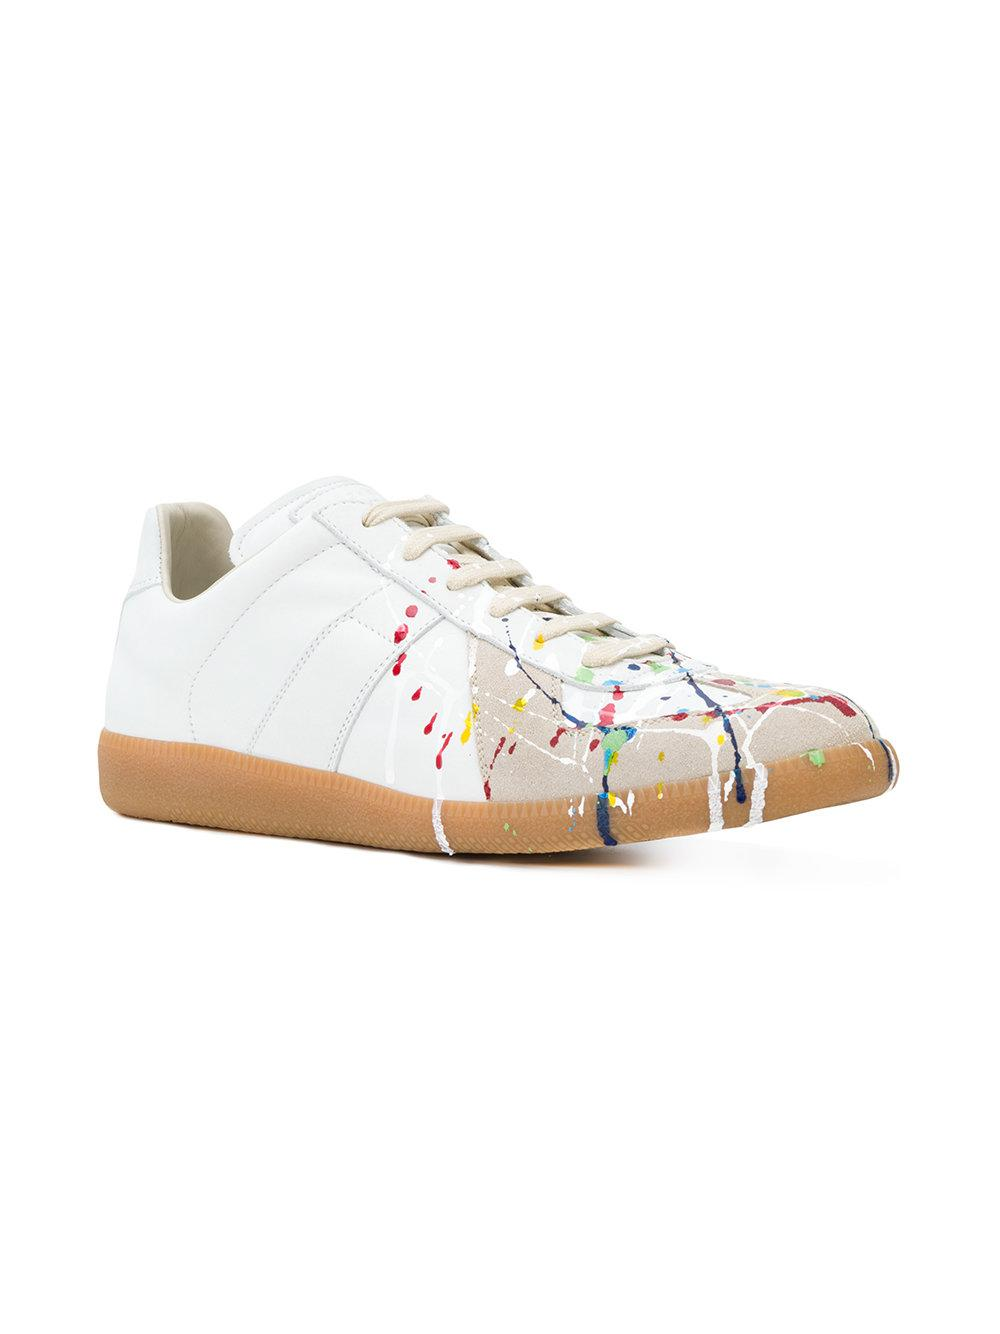 ac1a8ff89335 Lyst - Maison Margiela Paint Splatter Sneakers in White for Men - Save 16%